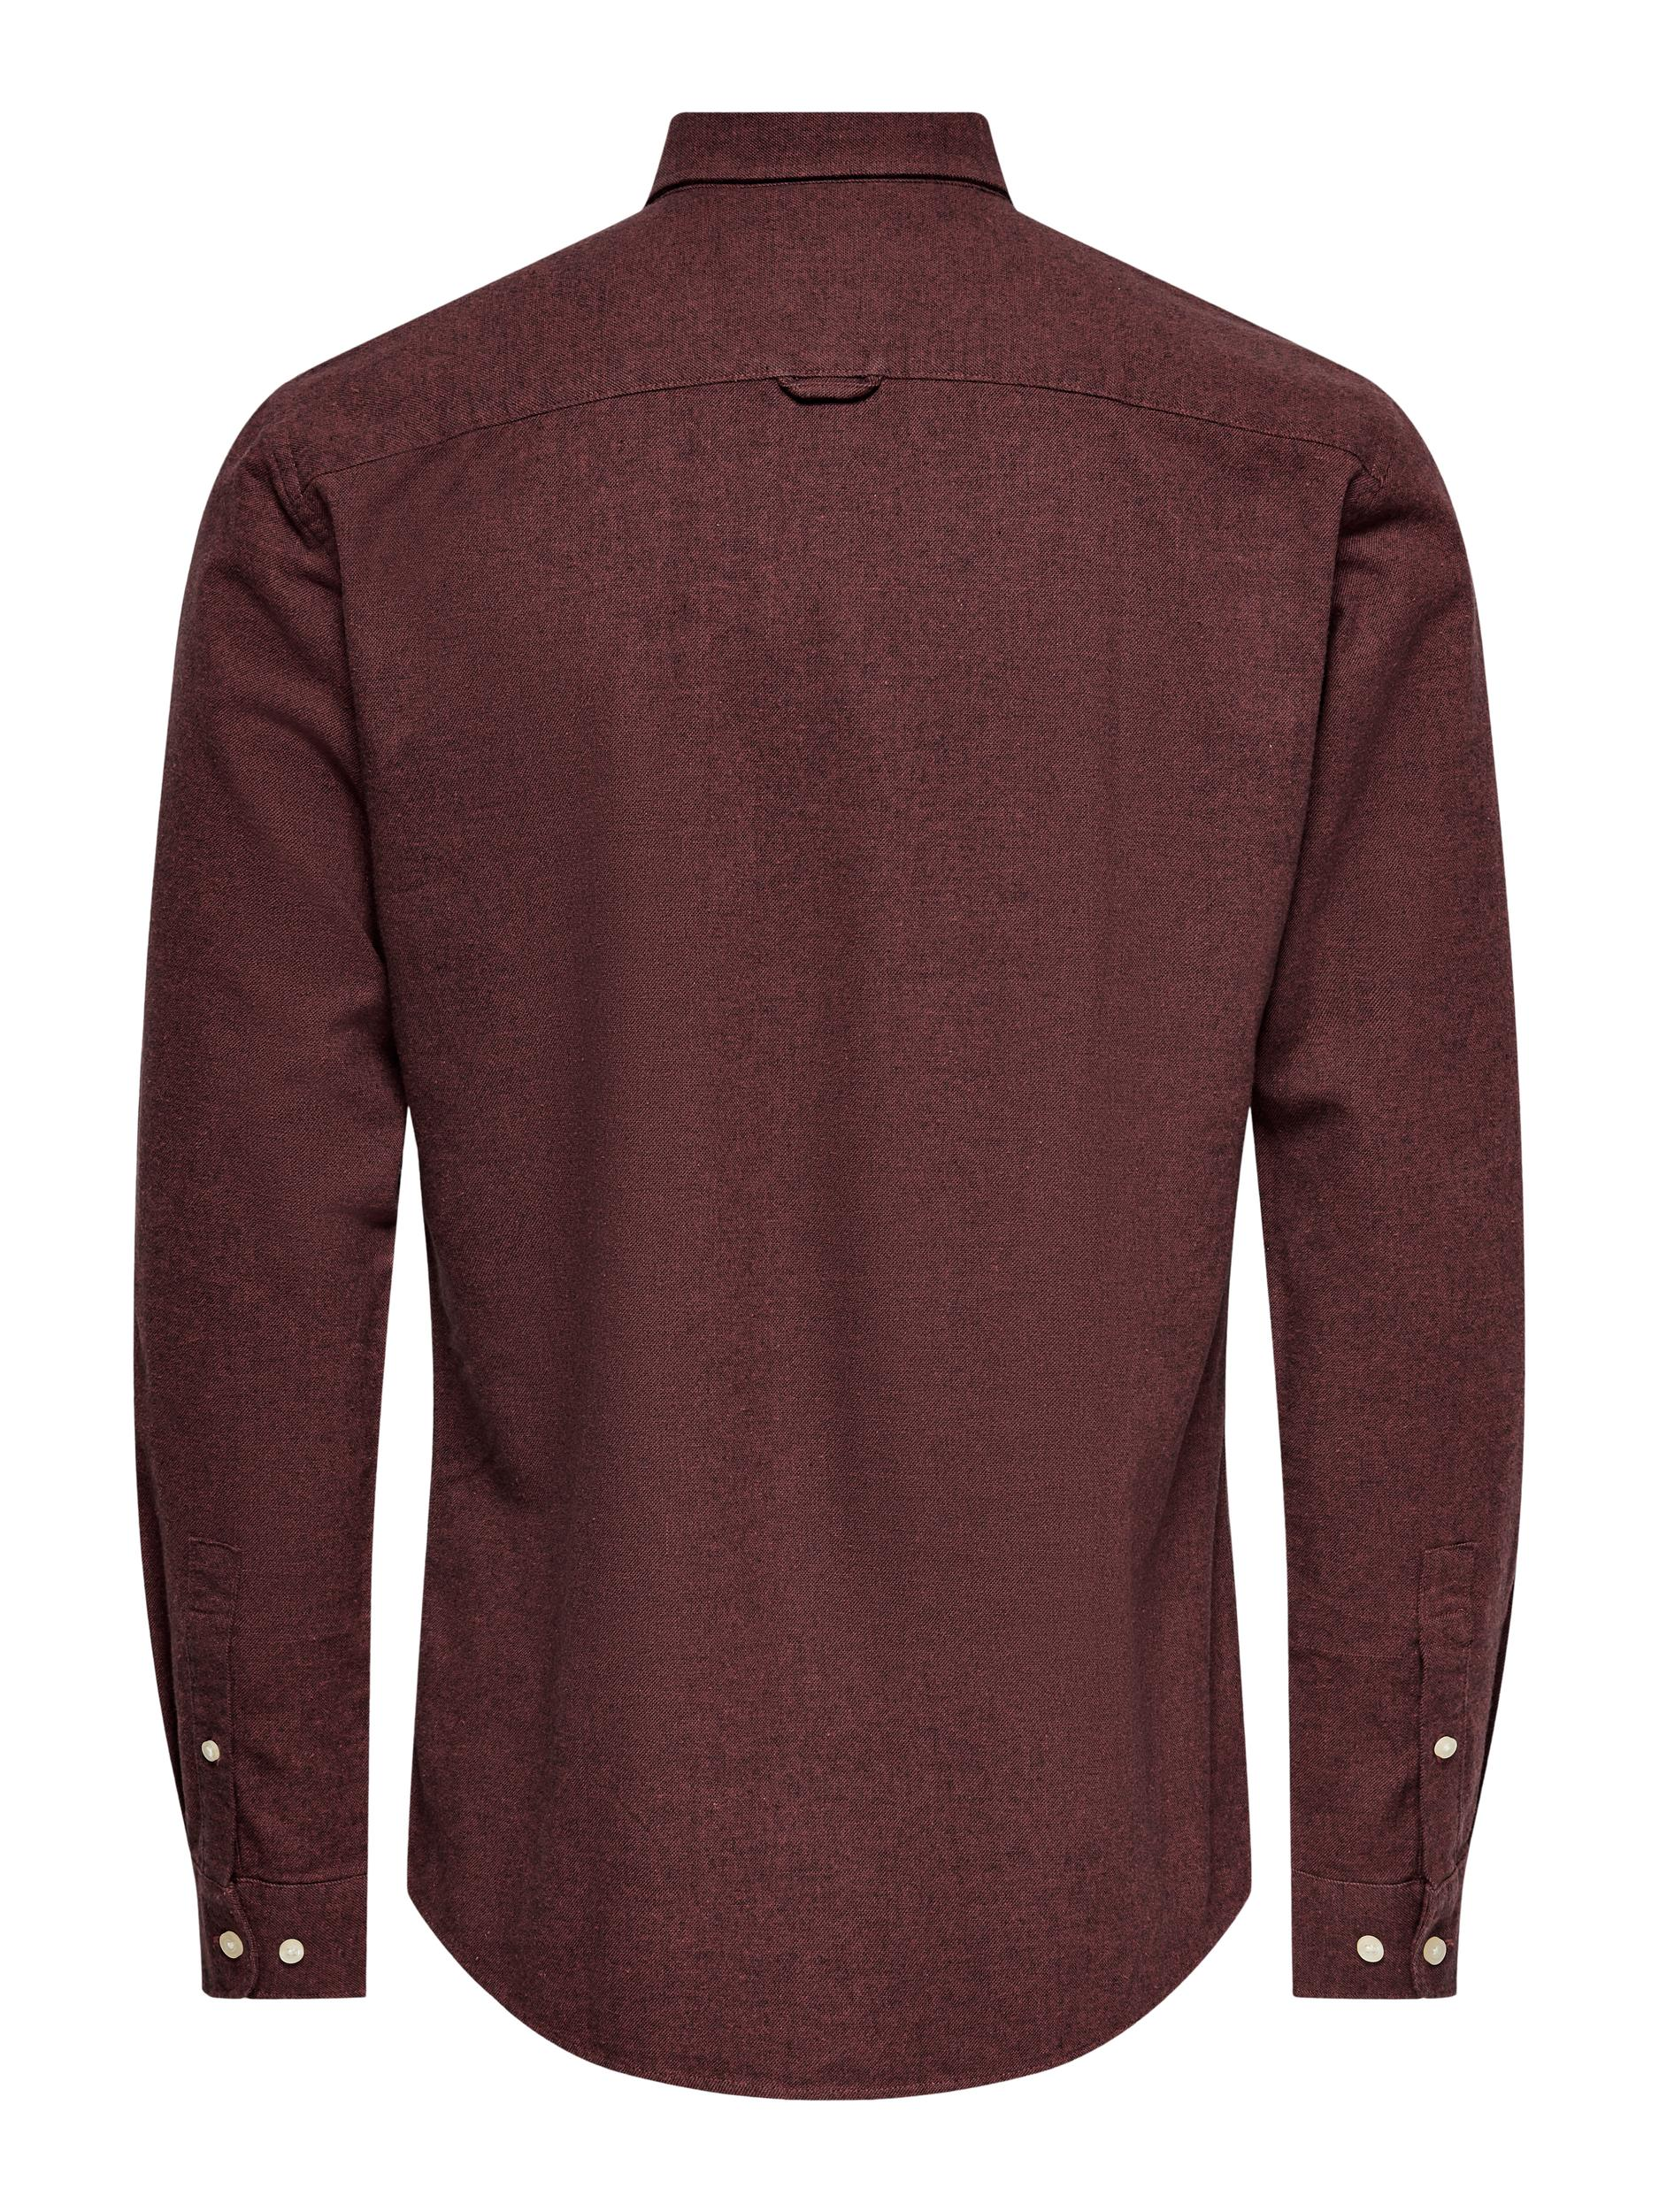 Only and Sons Niko LS skjorte, Burnt henna, XX-large